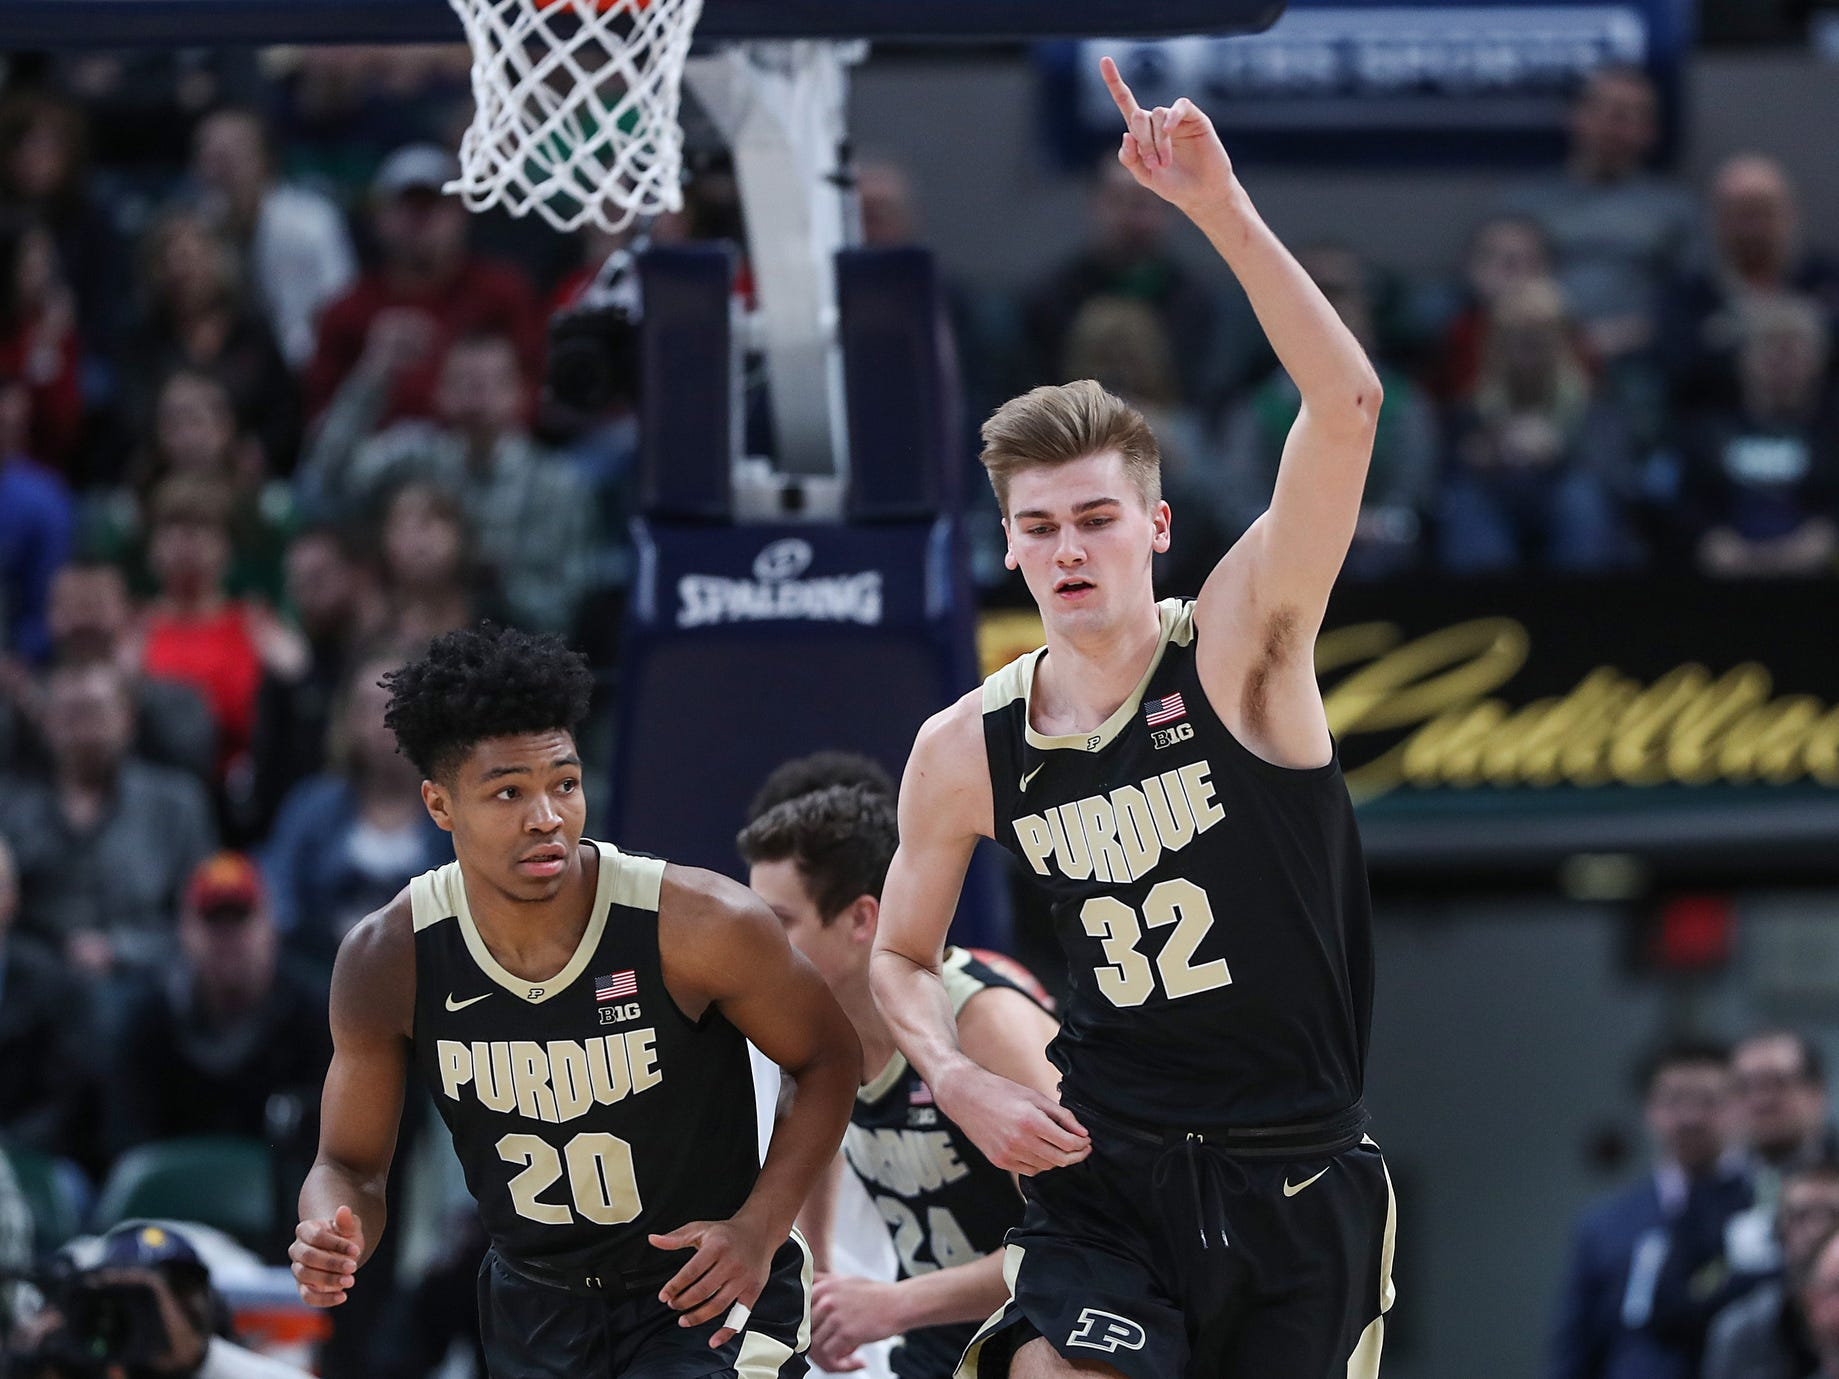 Purdue Boilermakers center Matt Haarms (32) celebrates as Purdue scores the first points of the Crossroads Classic game between Purdue and Notre Dame at Banker's Life Fieldhouse in Indianapolis, Saturday, Dec. 15, 2018.